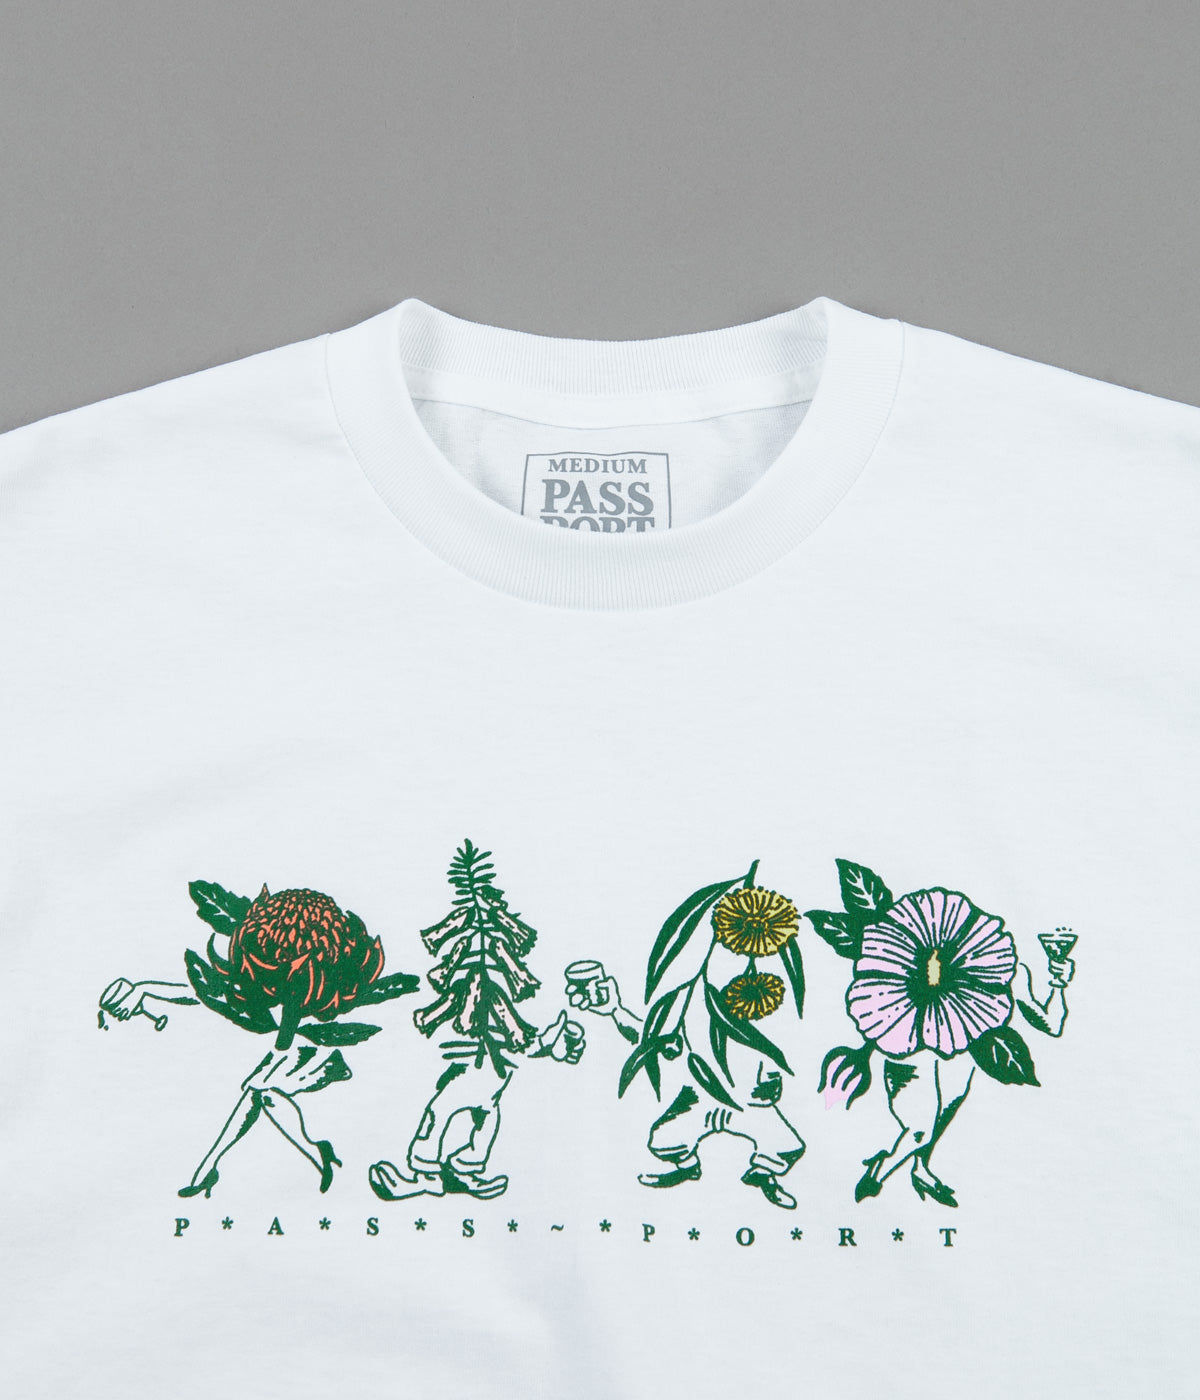 Pass Port Floral Friends T-Shirt - White